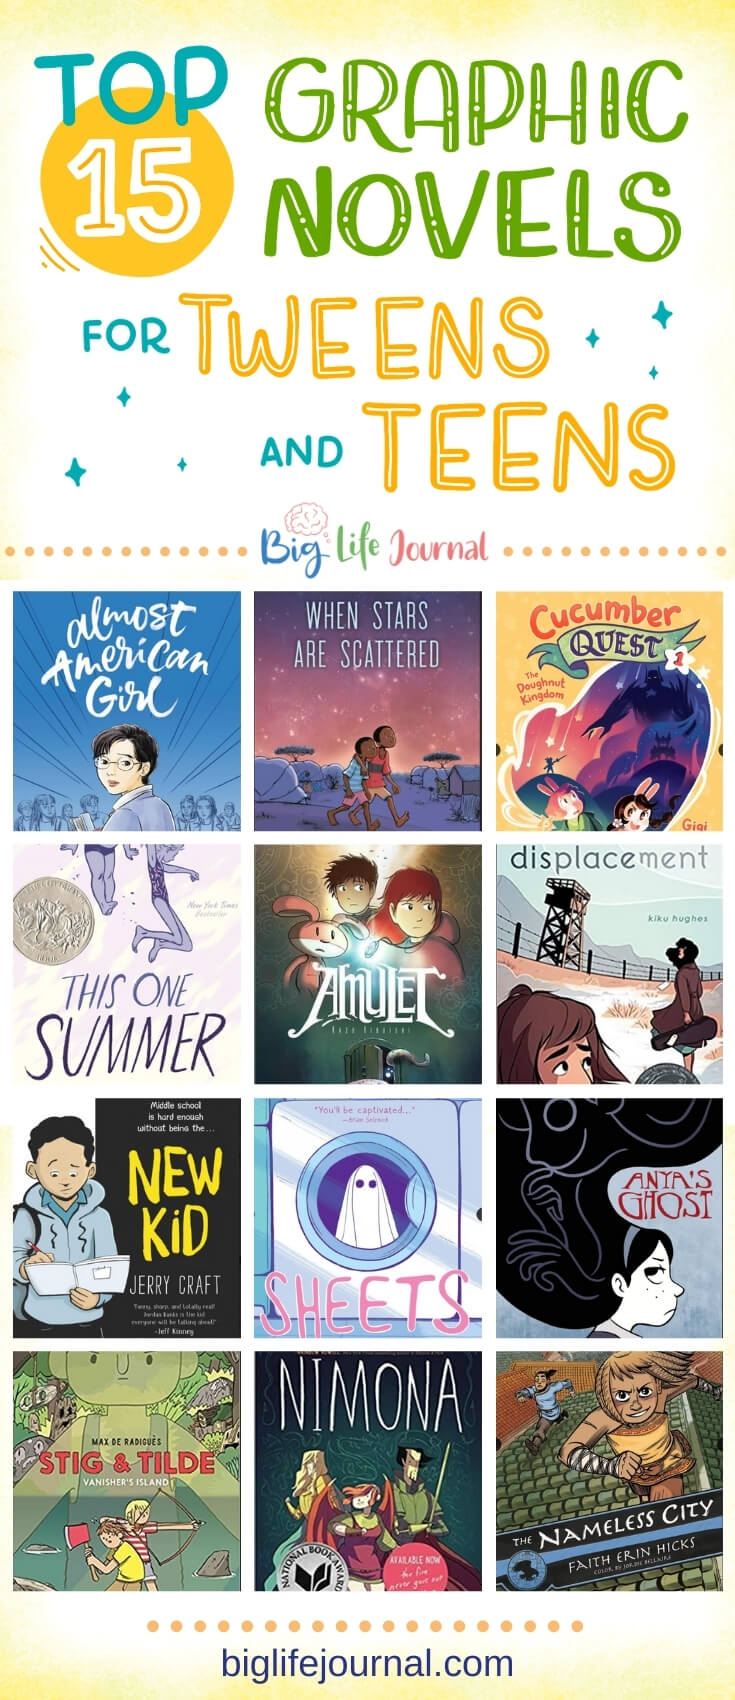 Top 15 Graphic Novels for Tweens and Teens